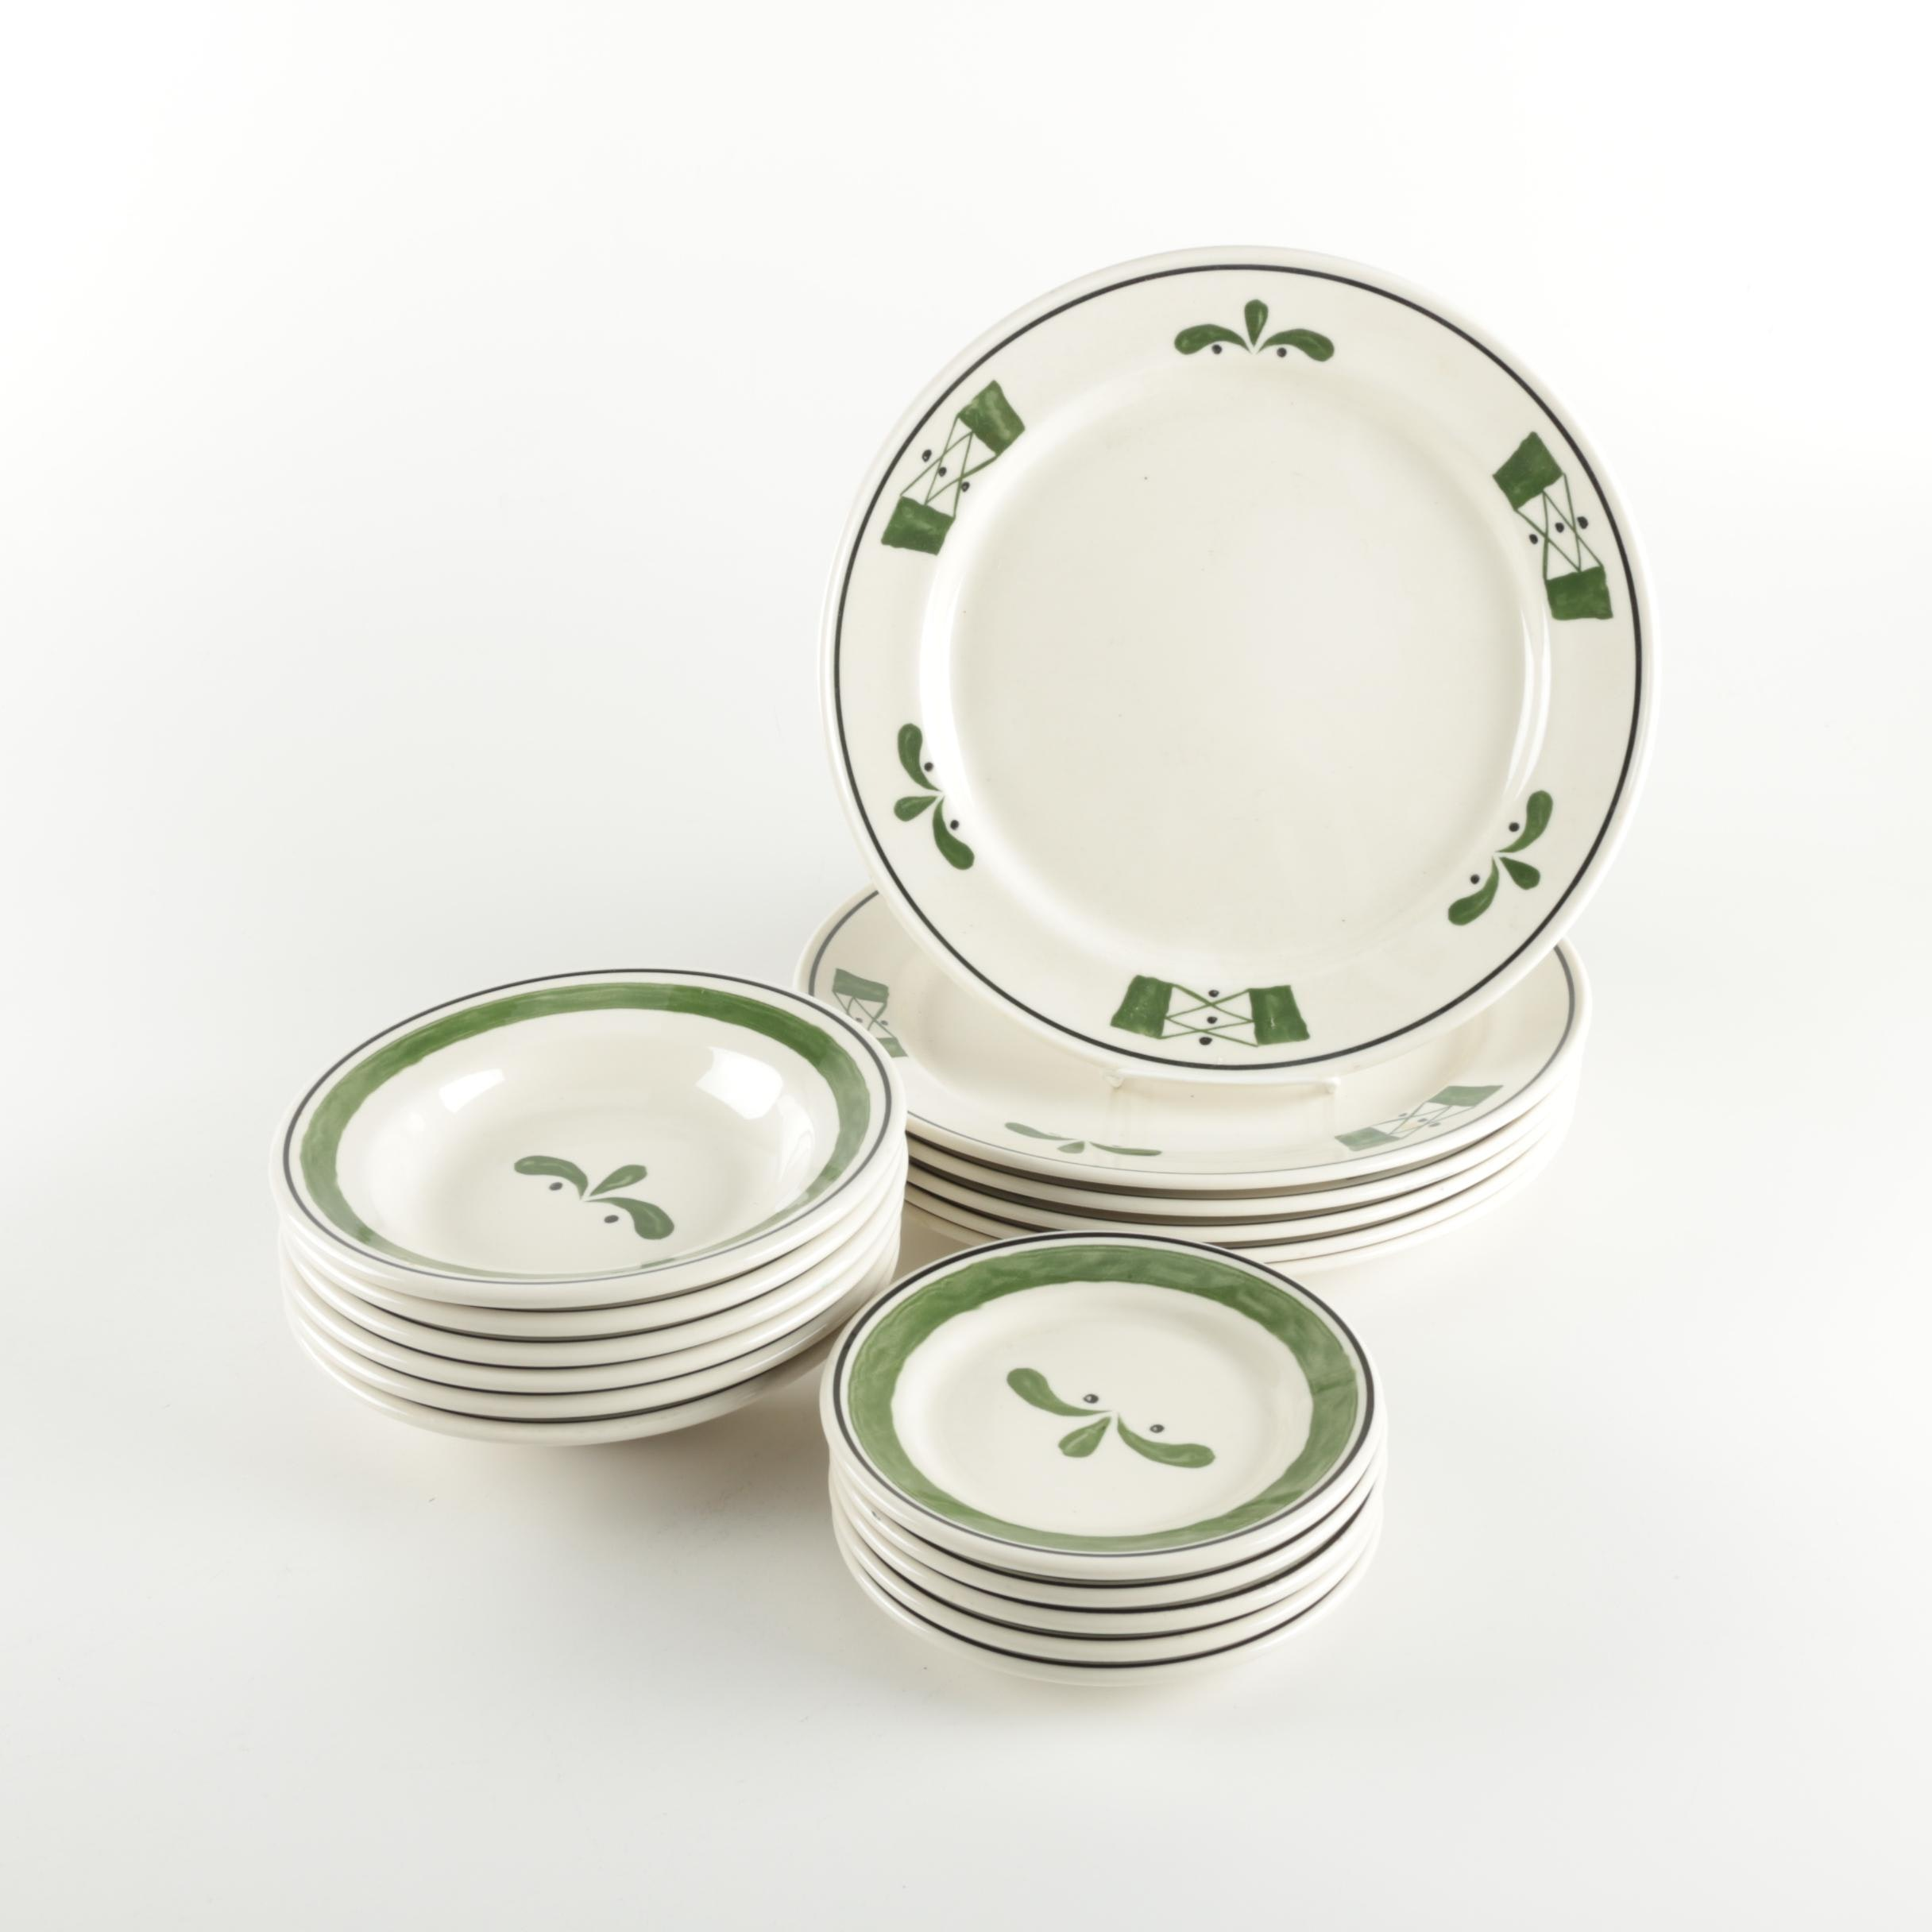 Hand-Painted Dishes with Green Accents